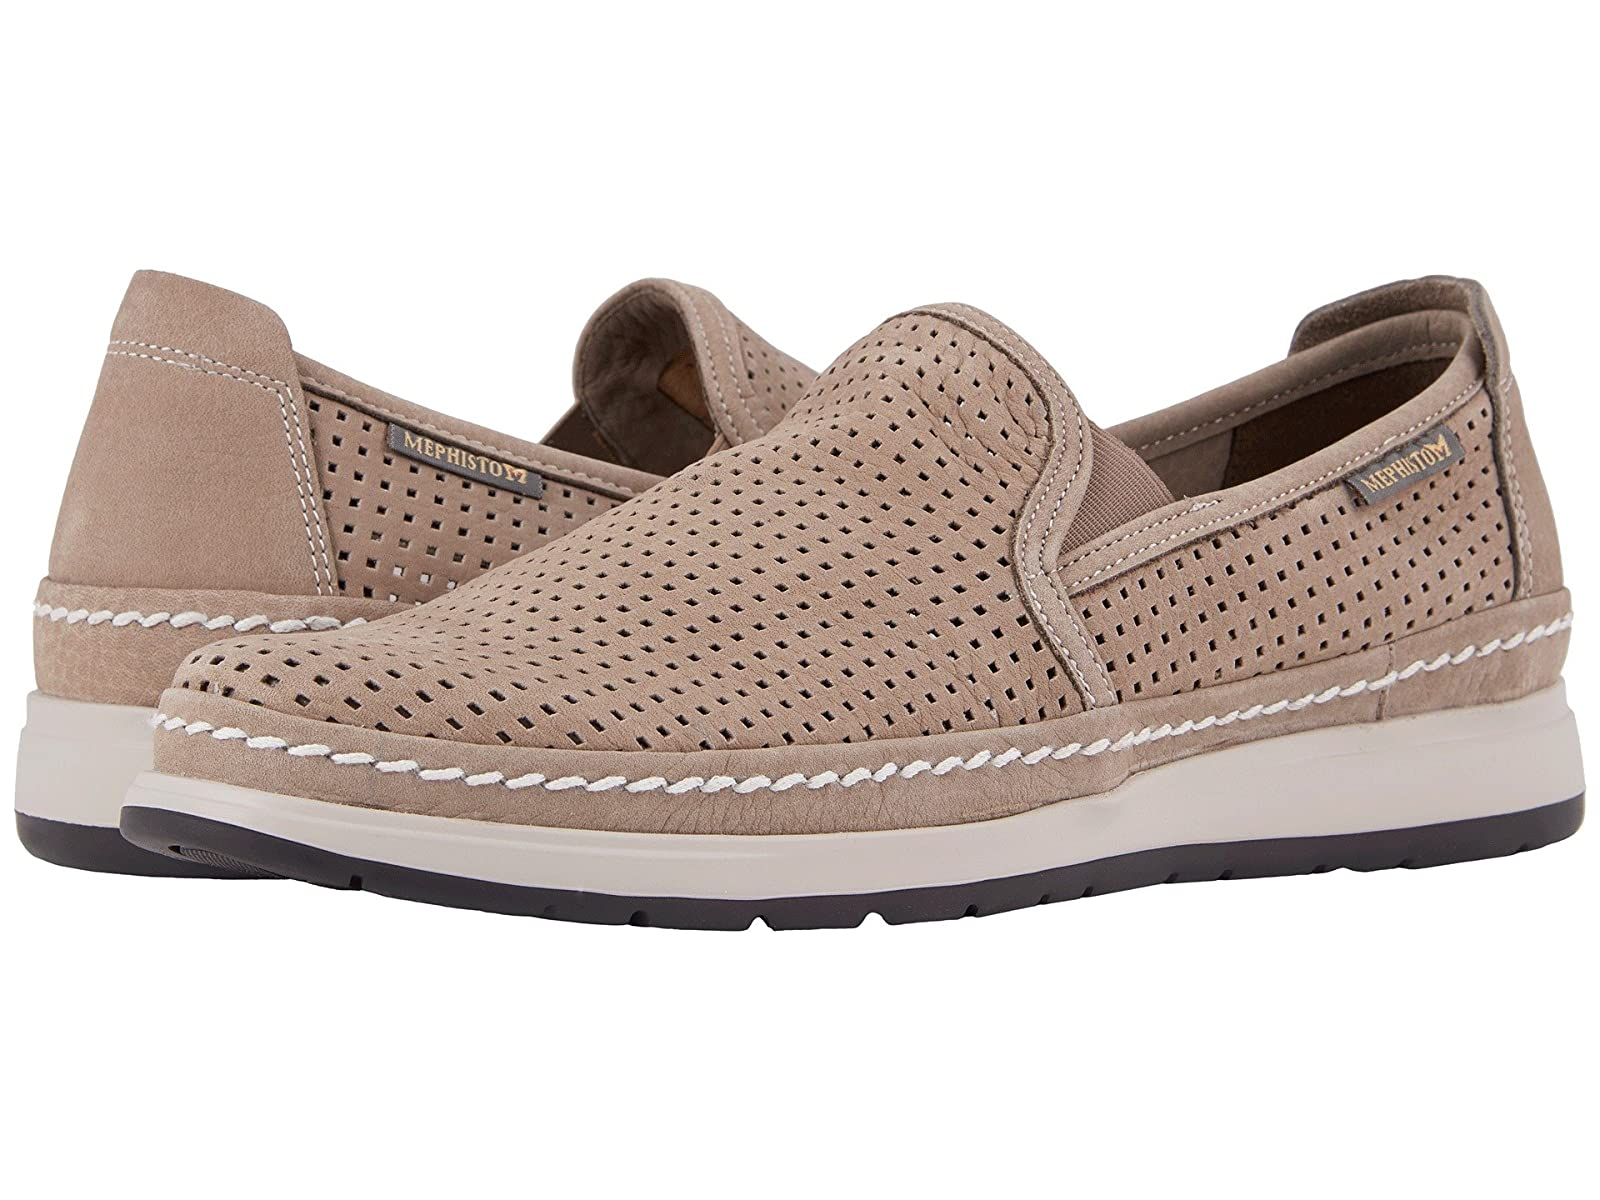 Mephisto Hadrian PerfAtmospheric grades have affordable shoes